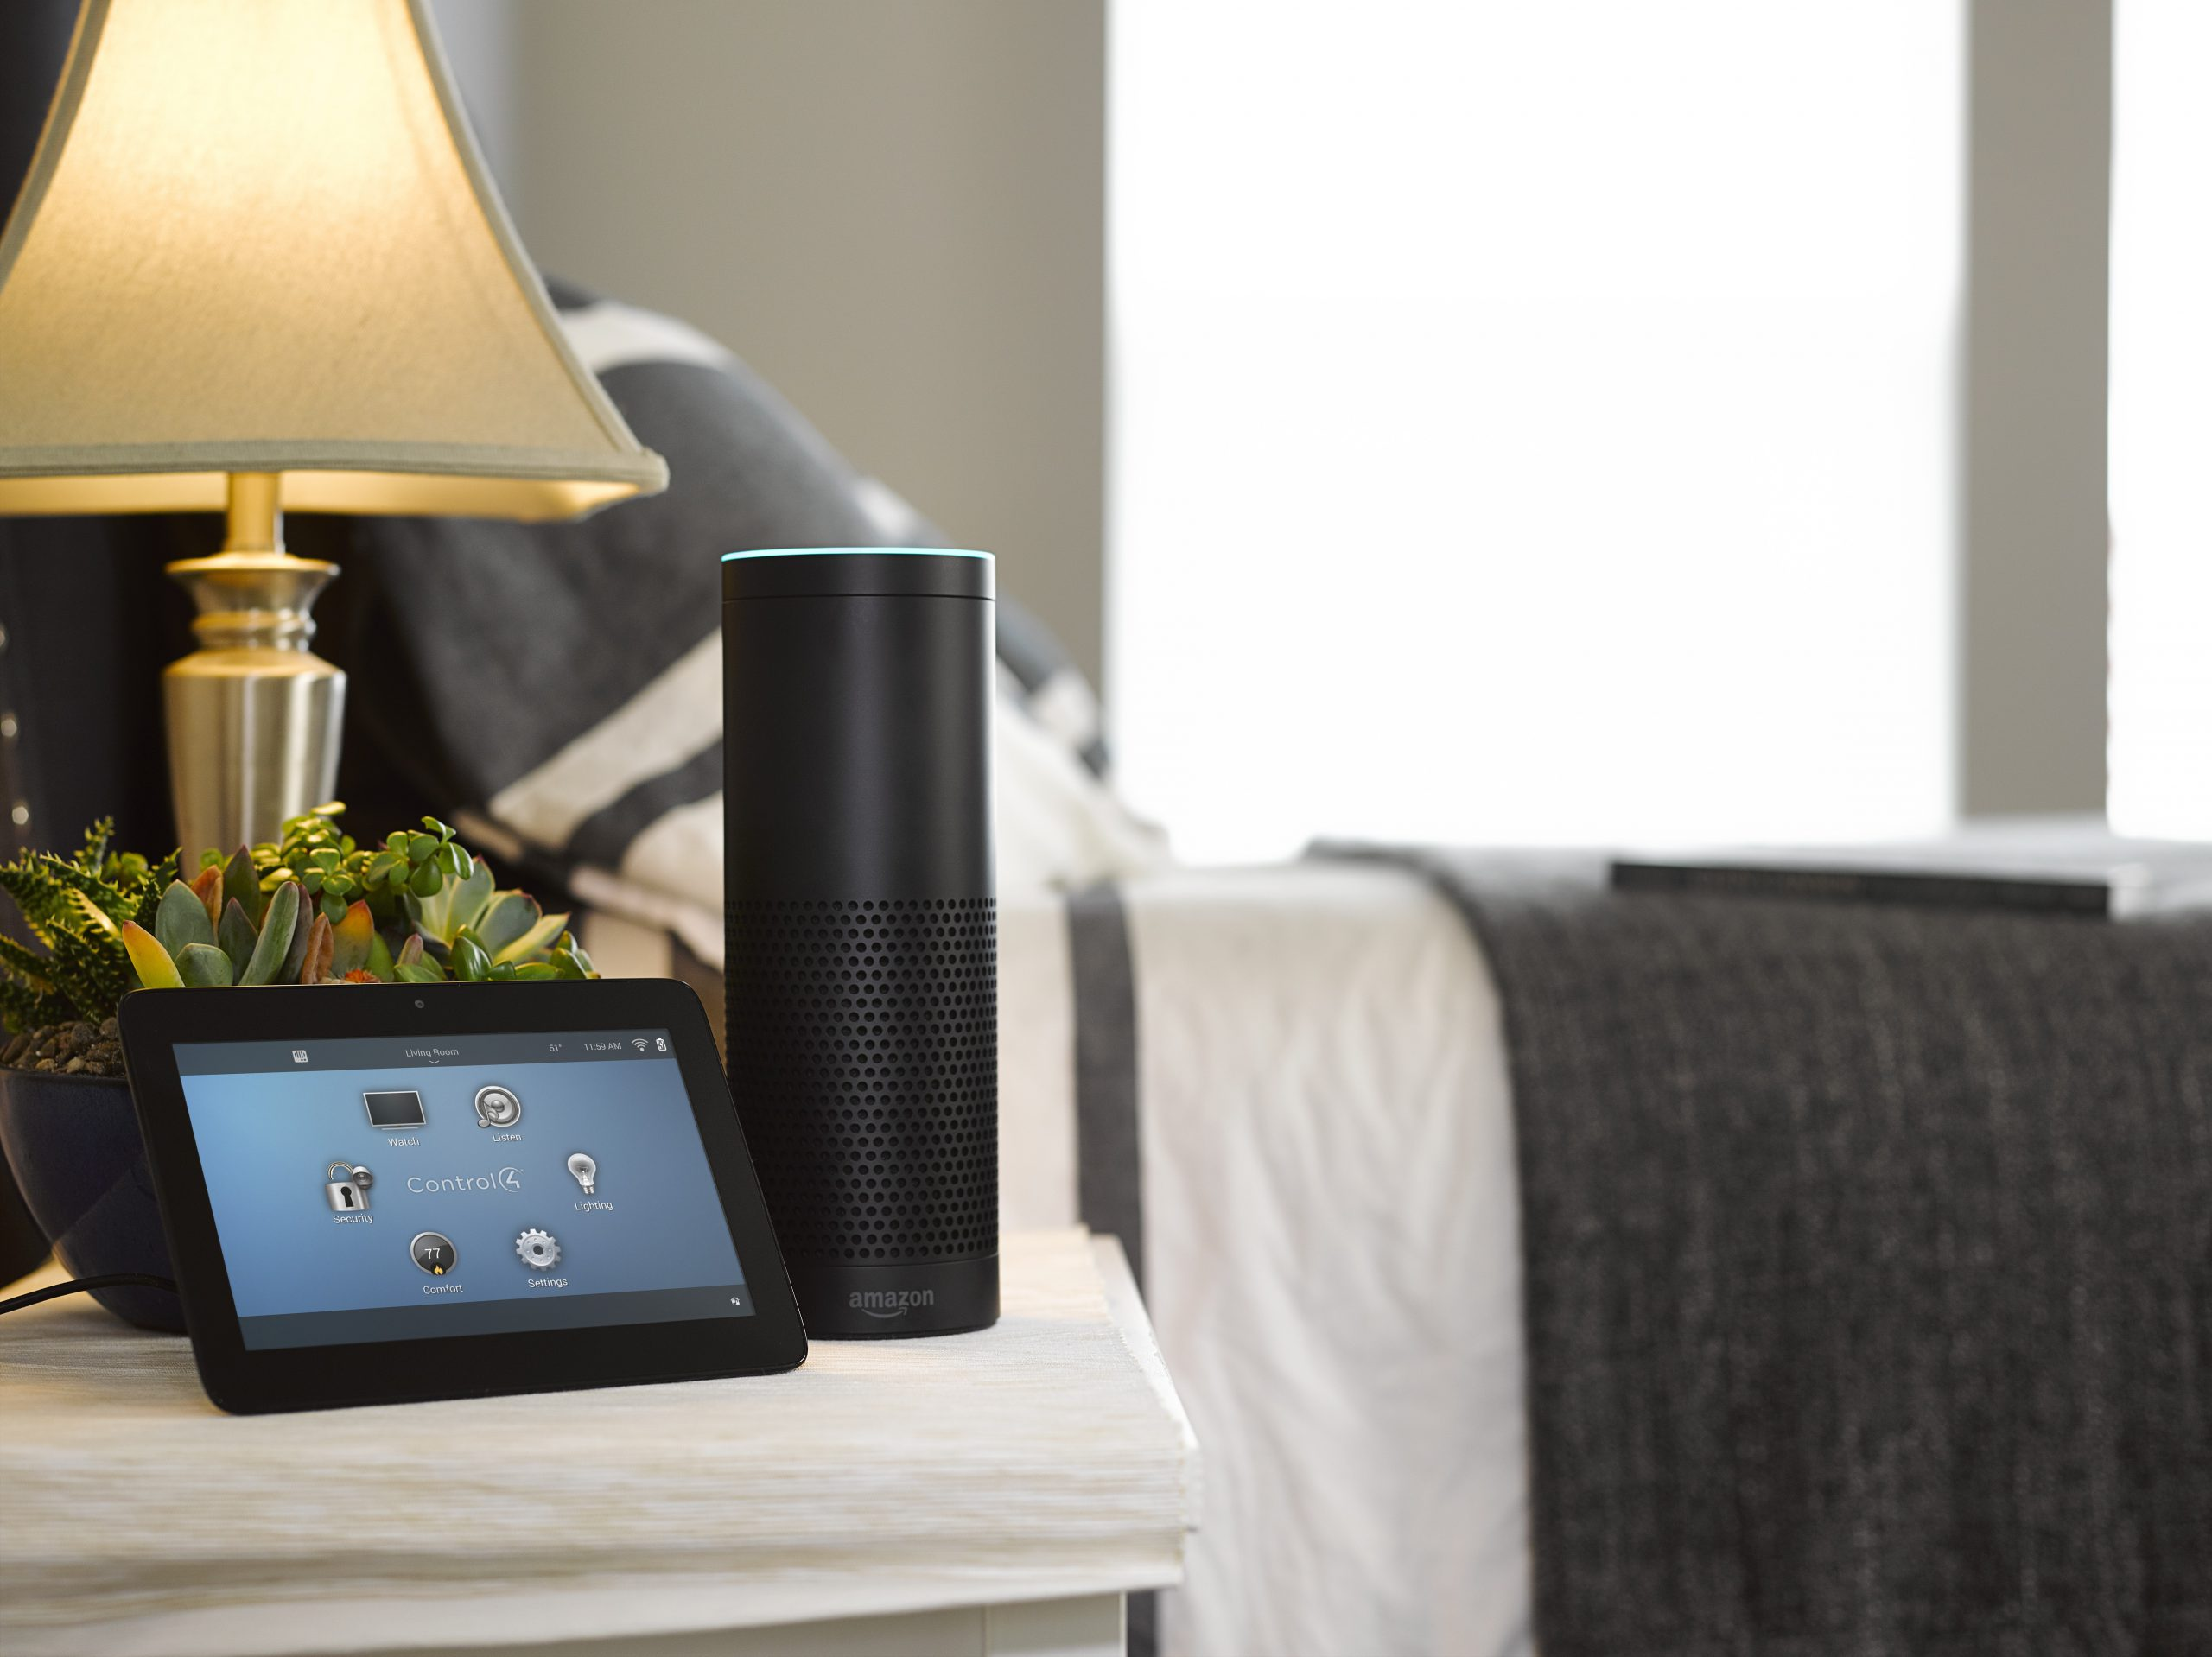 L'abilità di Control4 Amazon Alexa è disponibile in nuove regioni